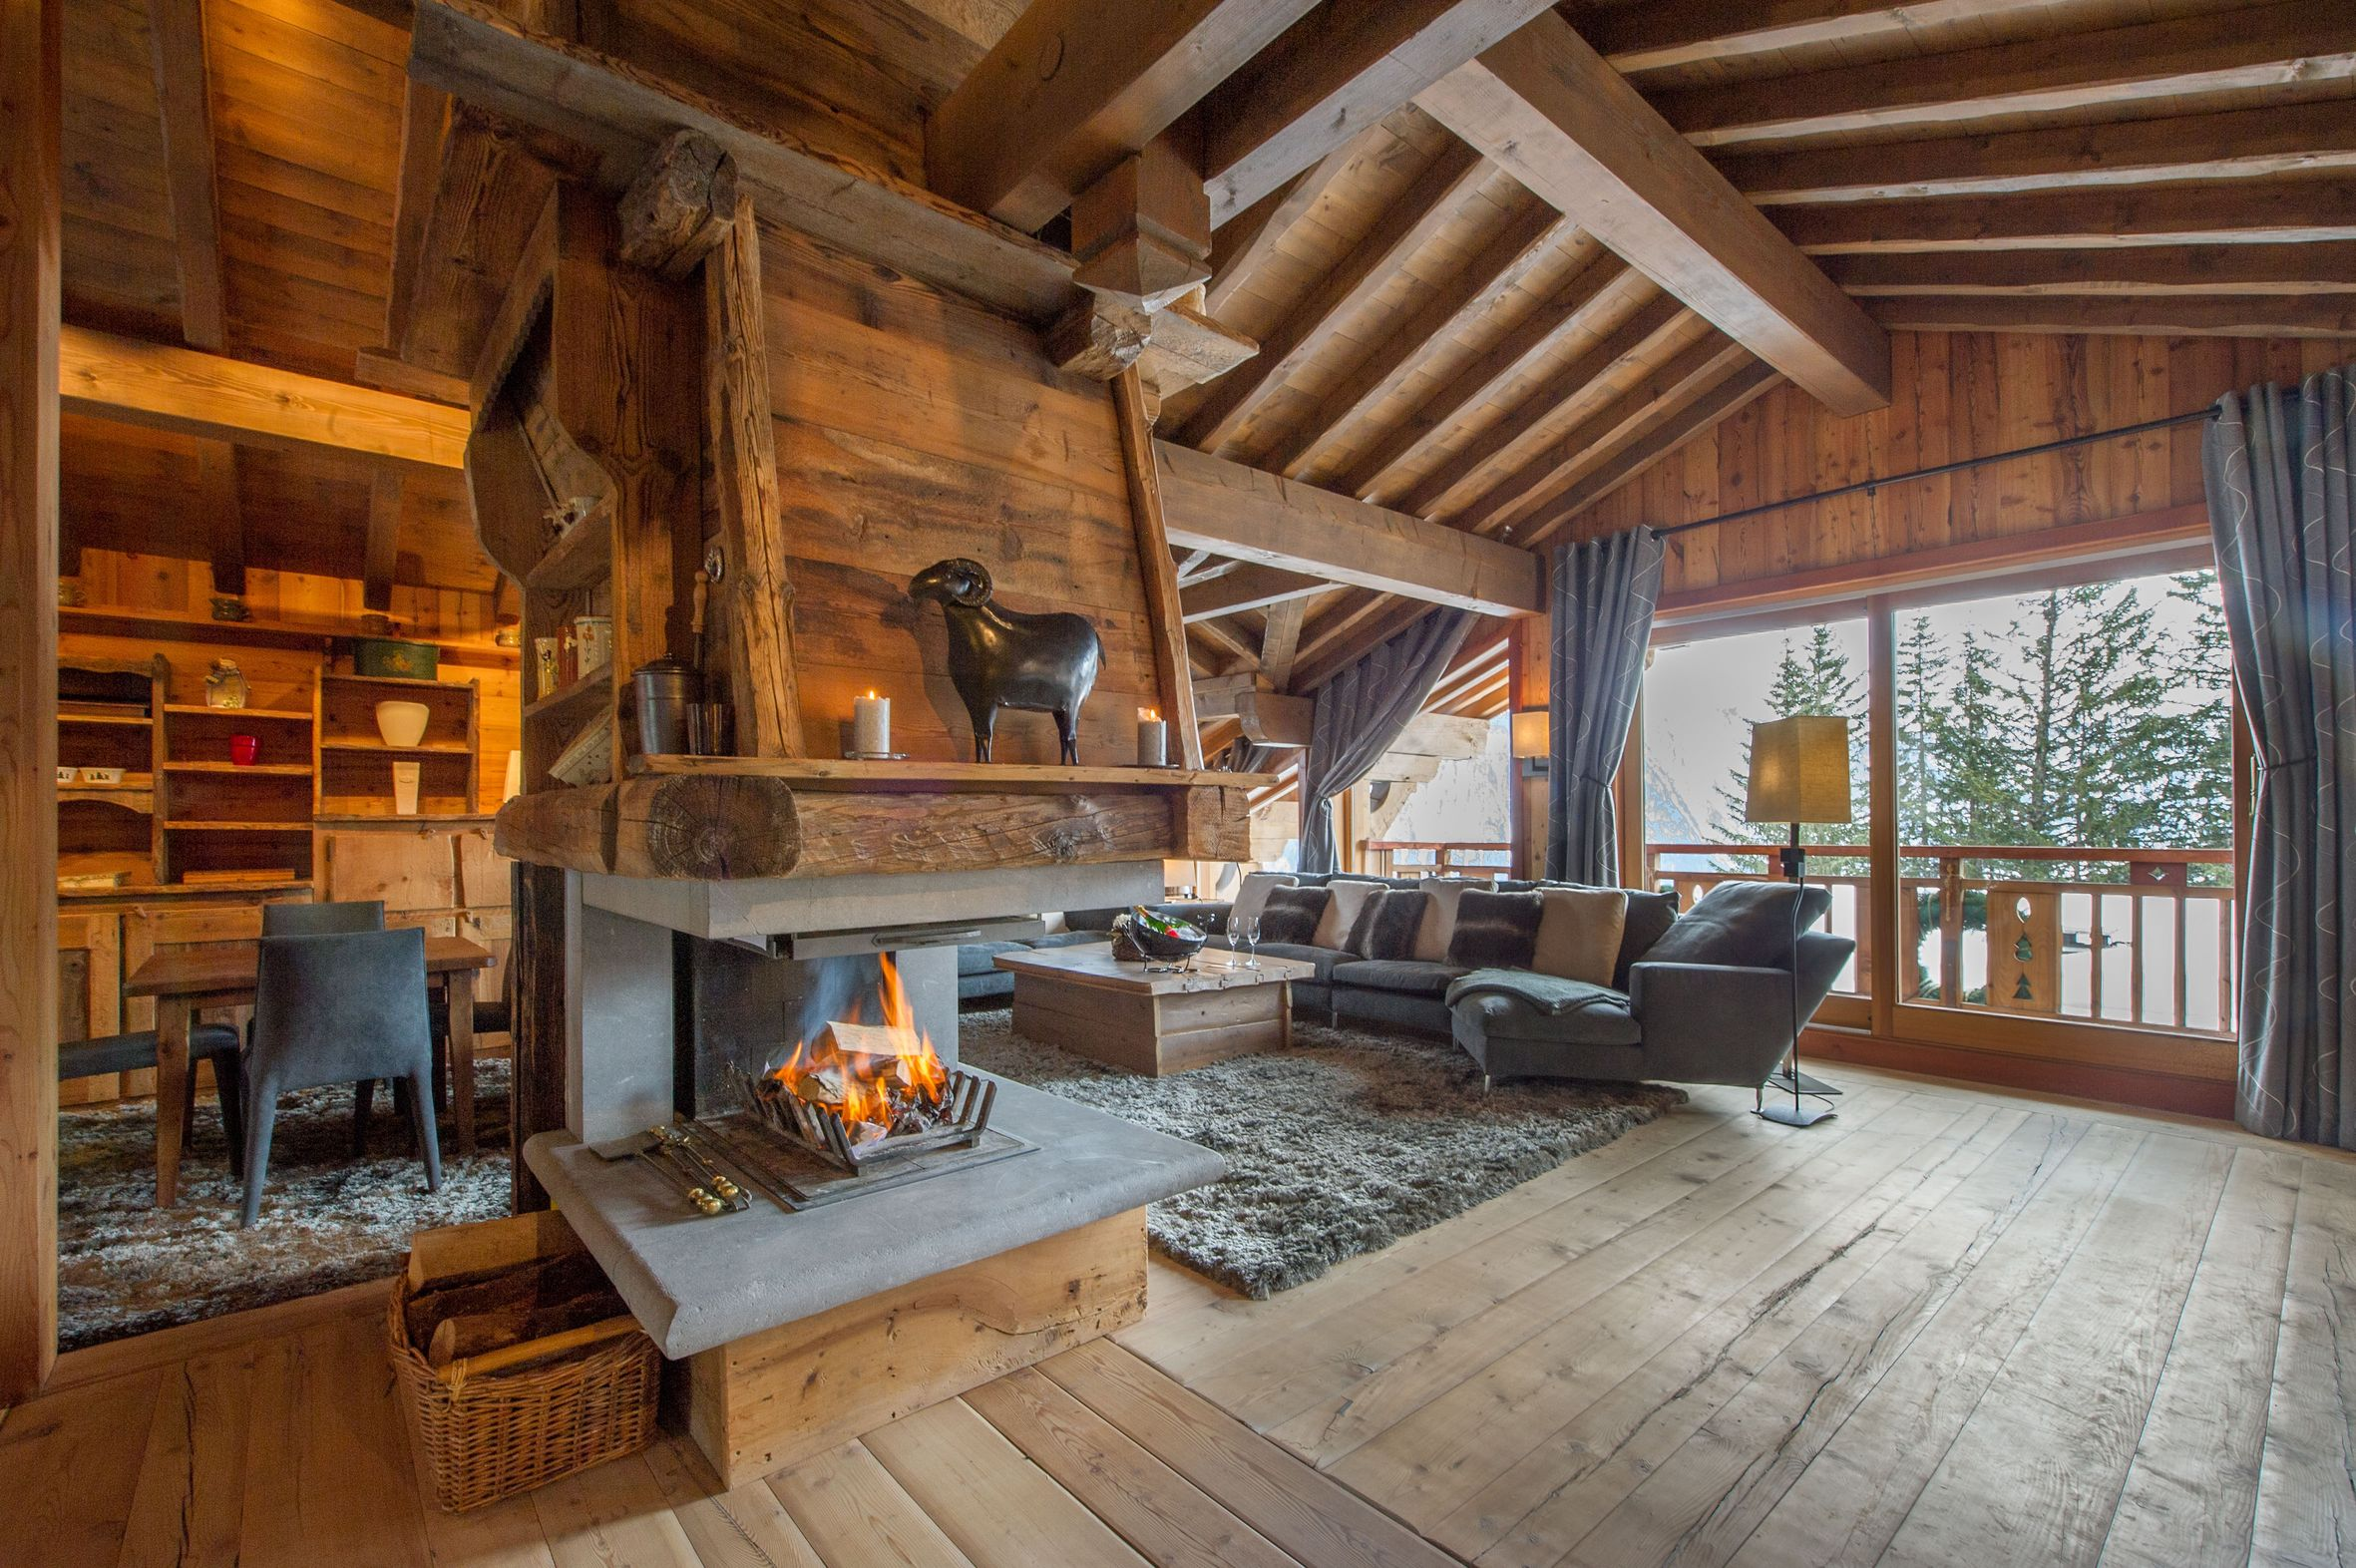 rental chalet courchevel 1850 12 people monic1204